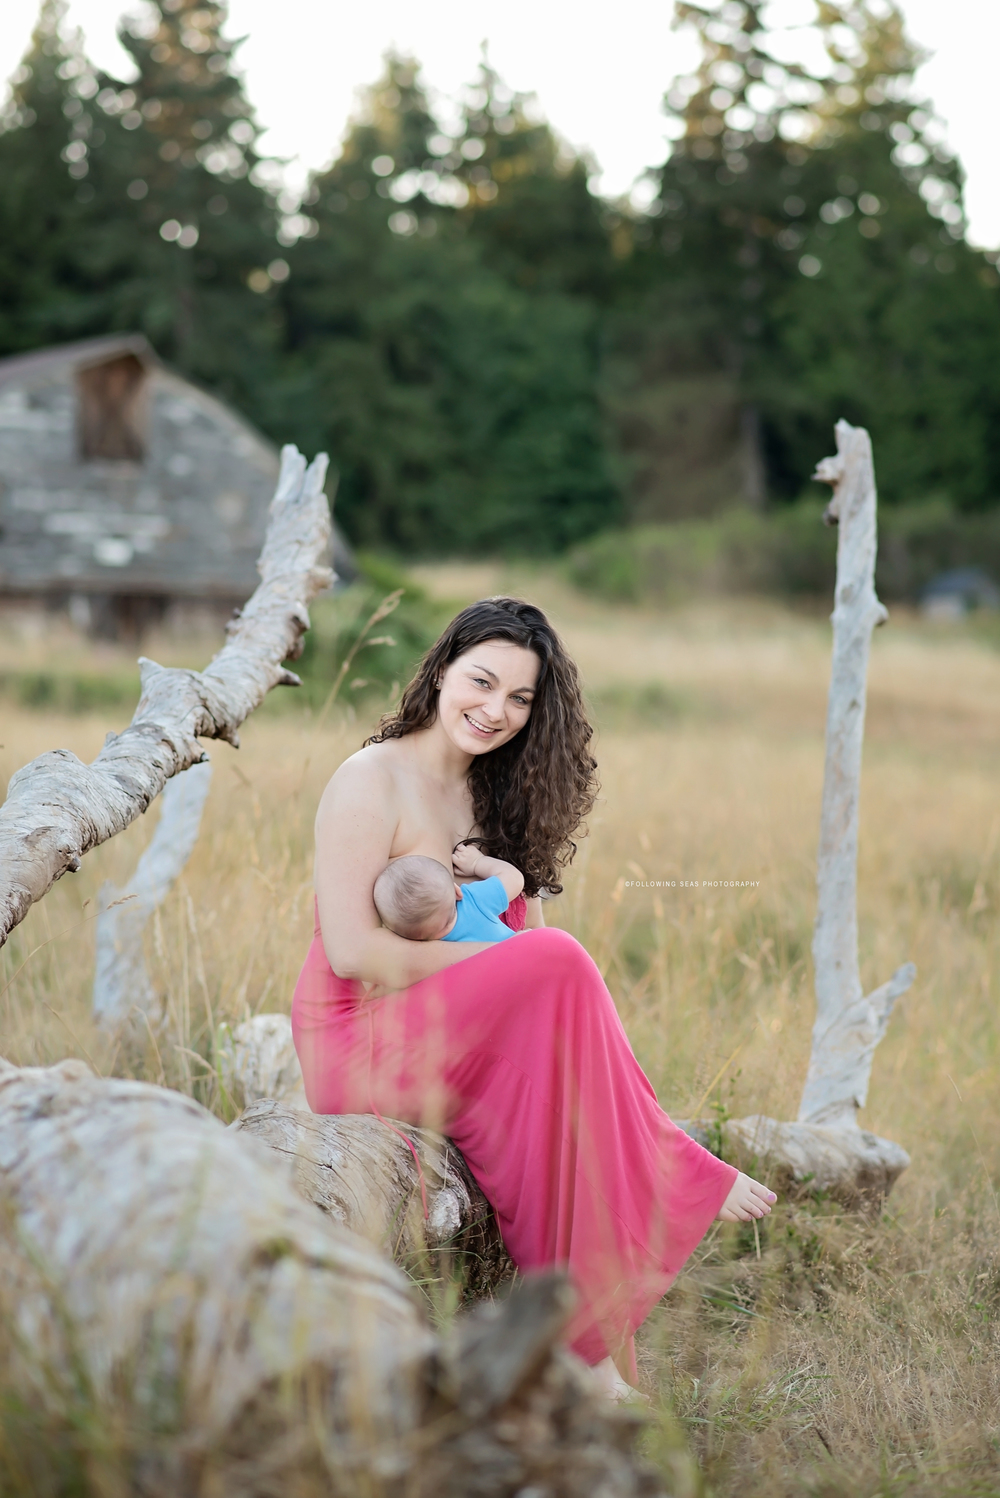 Port-Orchard-Breastfeeding-Photographer-Following-Seas-Photography-9944 copy.jpg